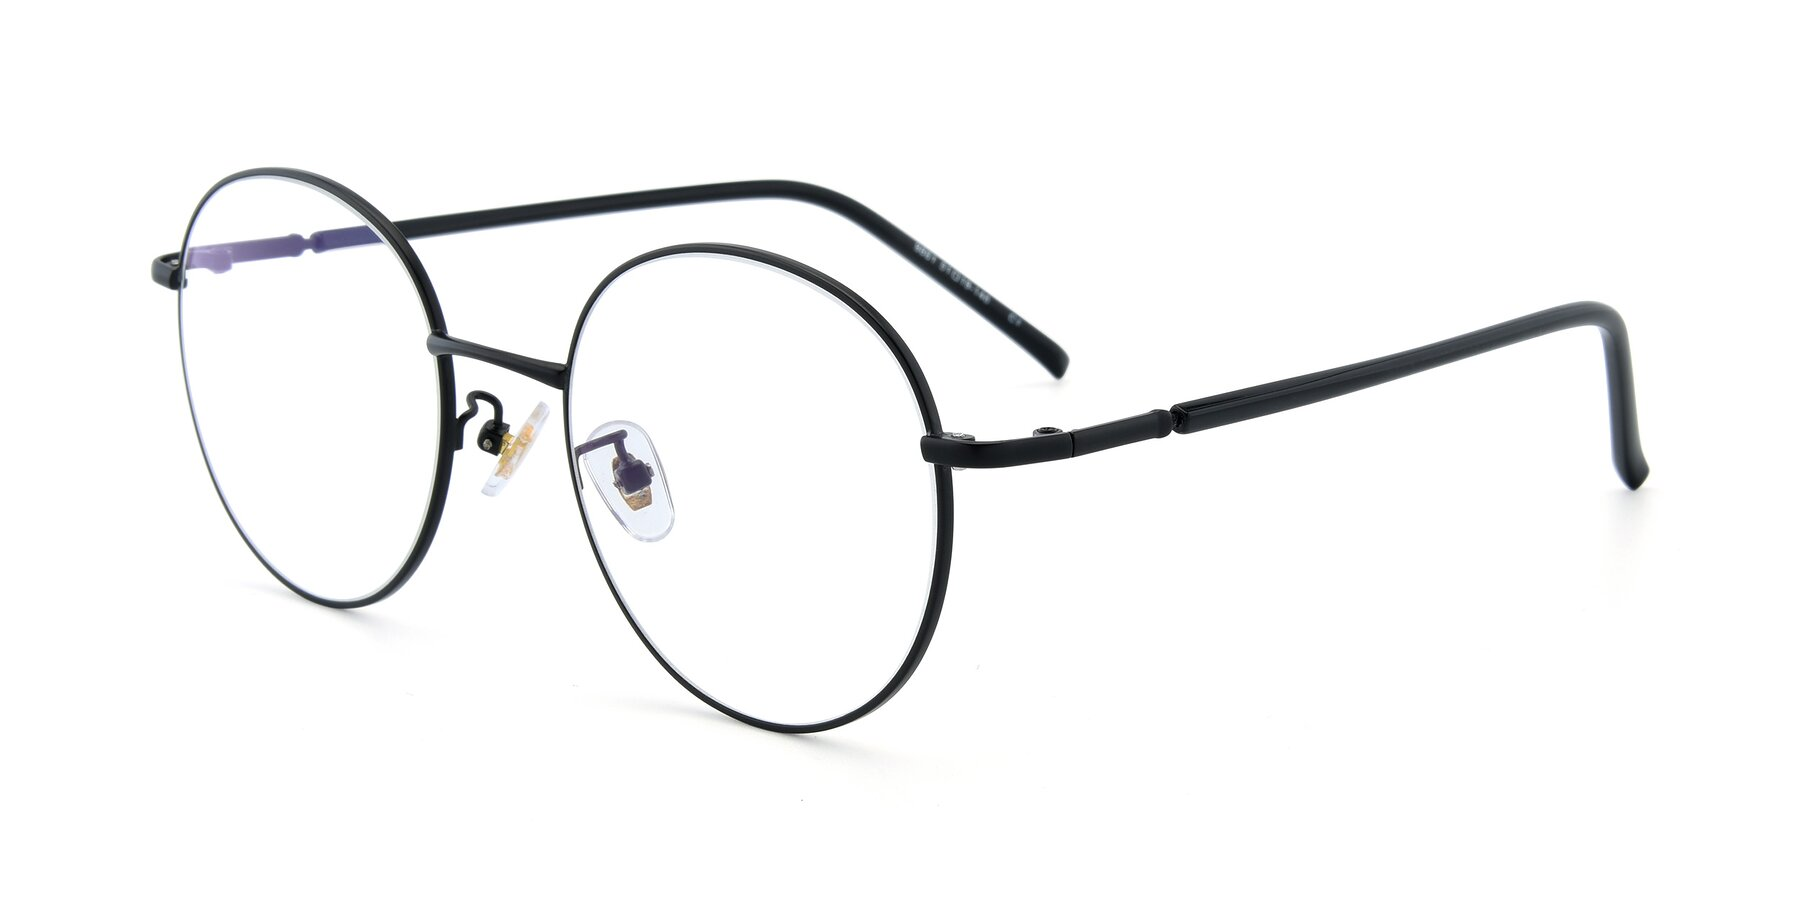 Angle of 9861 in Black with Clear Eyeglass Lenses